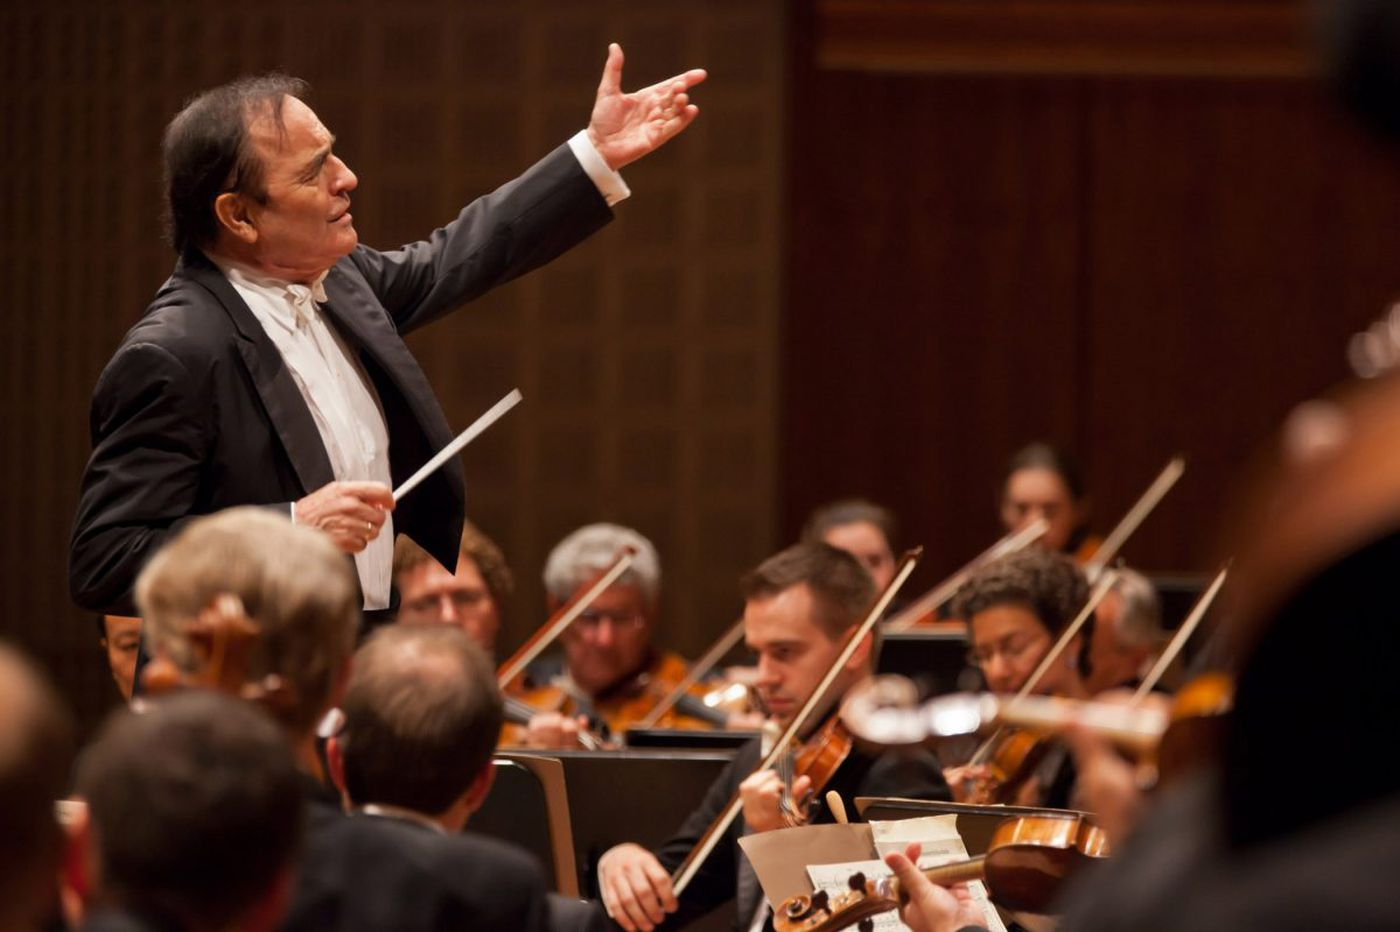 Philadelphia Orchestra has played 650 concerts with Charles Dutoit, the conductor accused of sexual misconduct